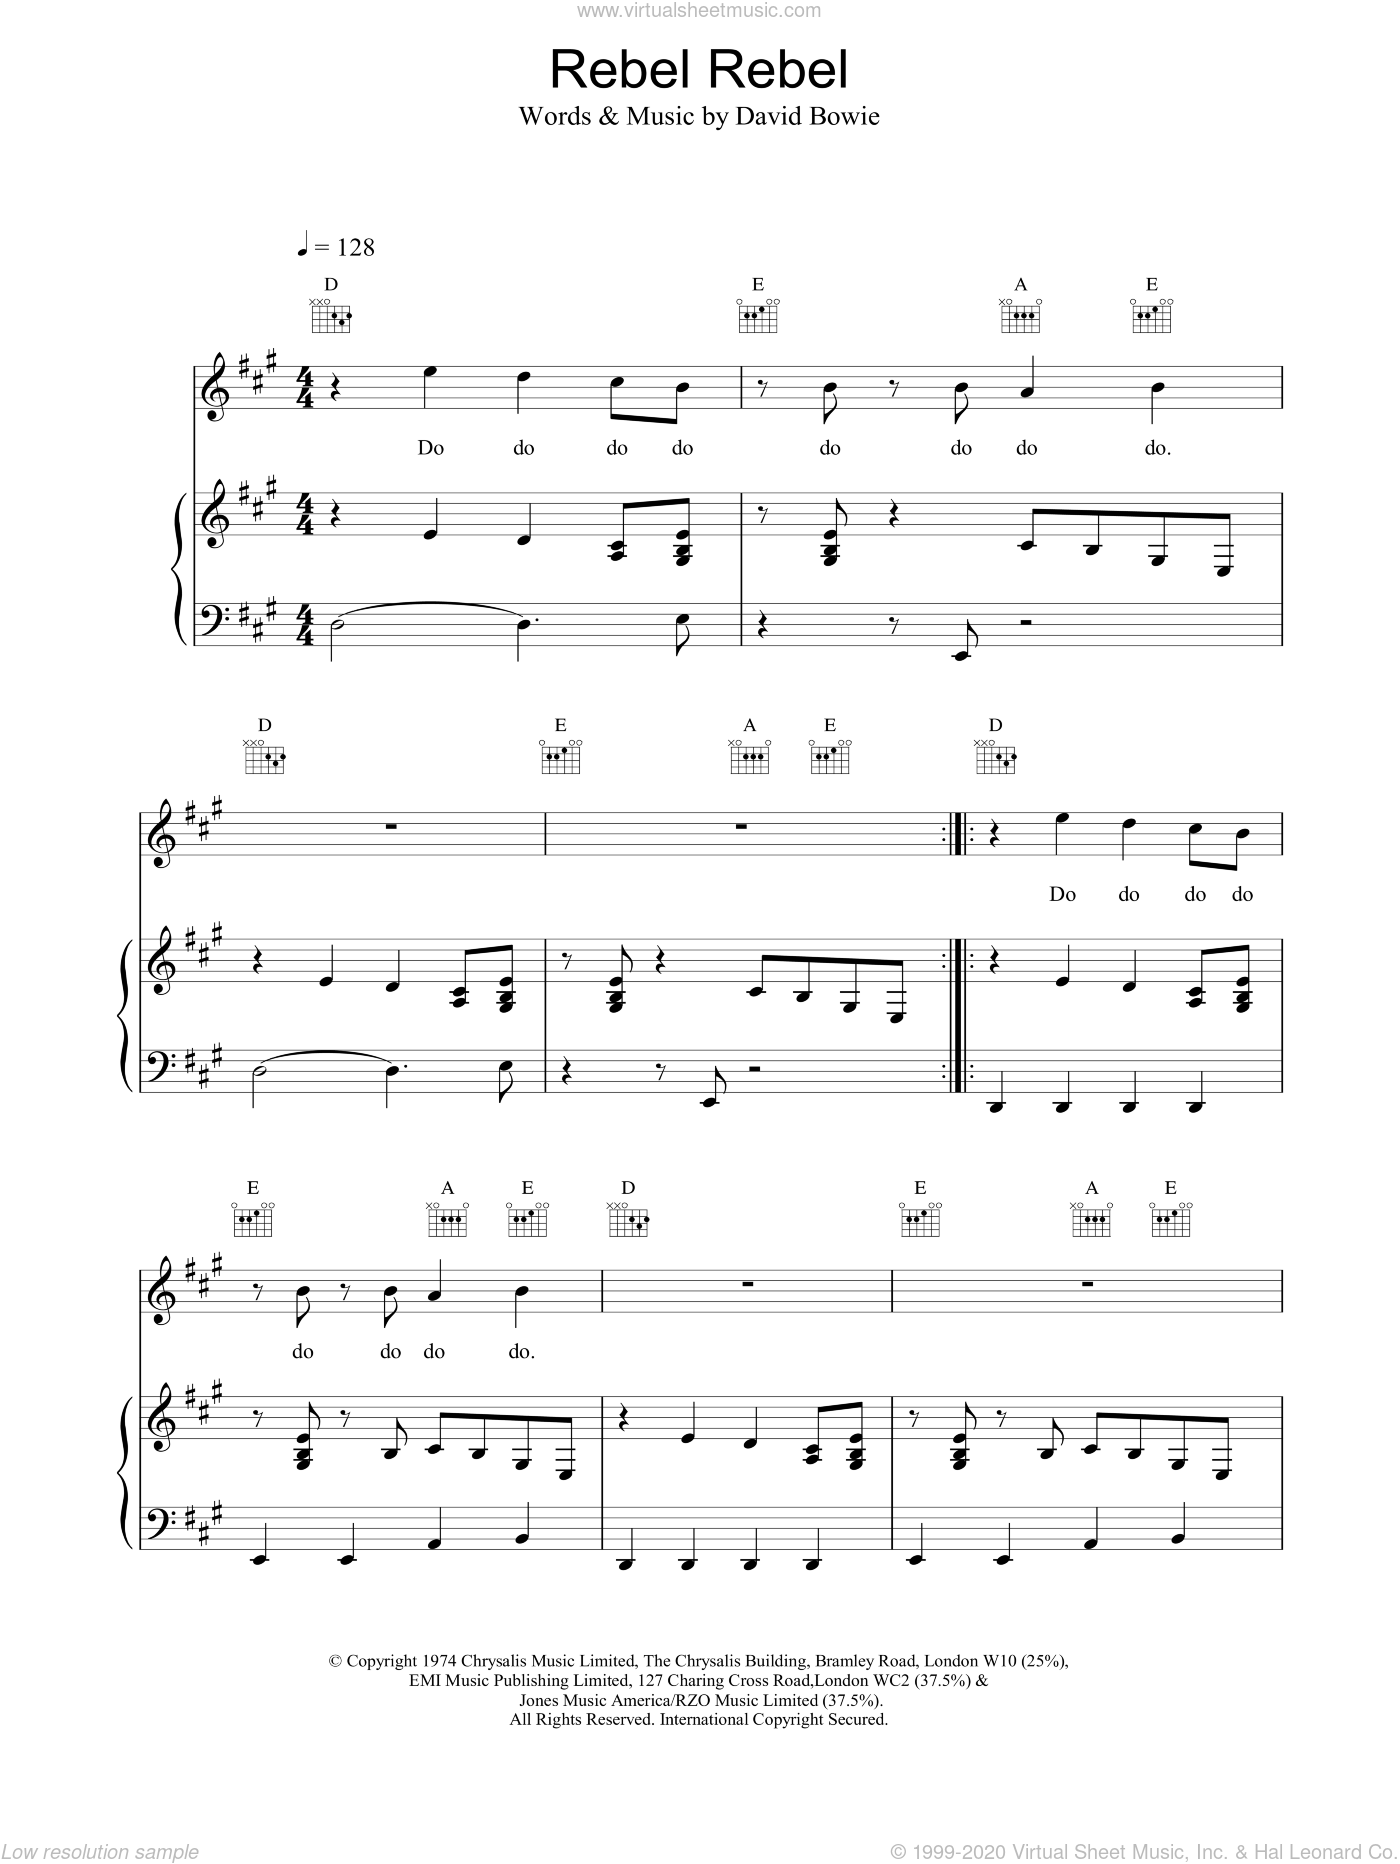 Rebel Rebel sheet music for voice, piano or guitar by David Bowie, intermediate